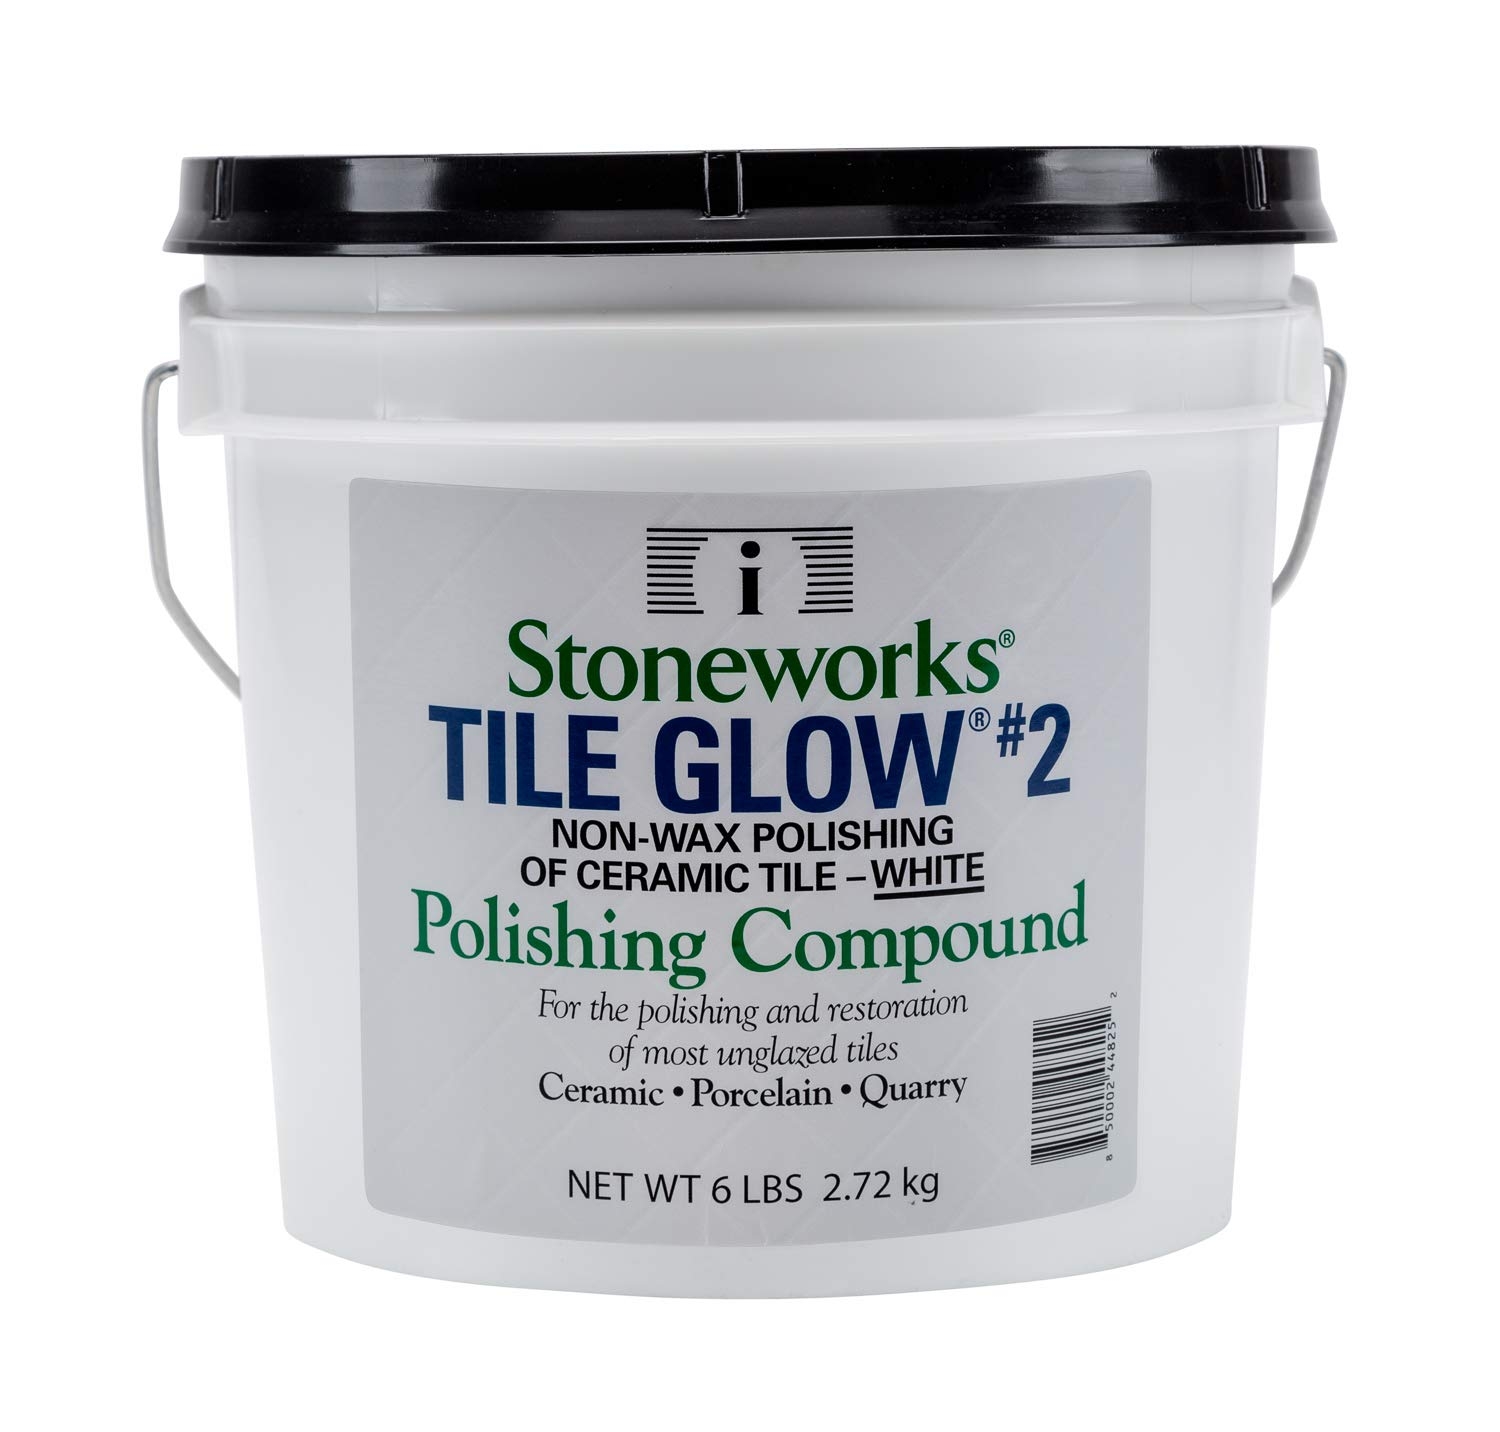 Tile Glow #2 White (6 Lb) Natural, Non-Wax Compound for The Polishing of Most Unglazed Ceramic, Porcelain and Quarry Tiles, which Gives a Long Lasting Finish and Natural Shine to Tiles